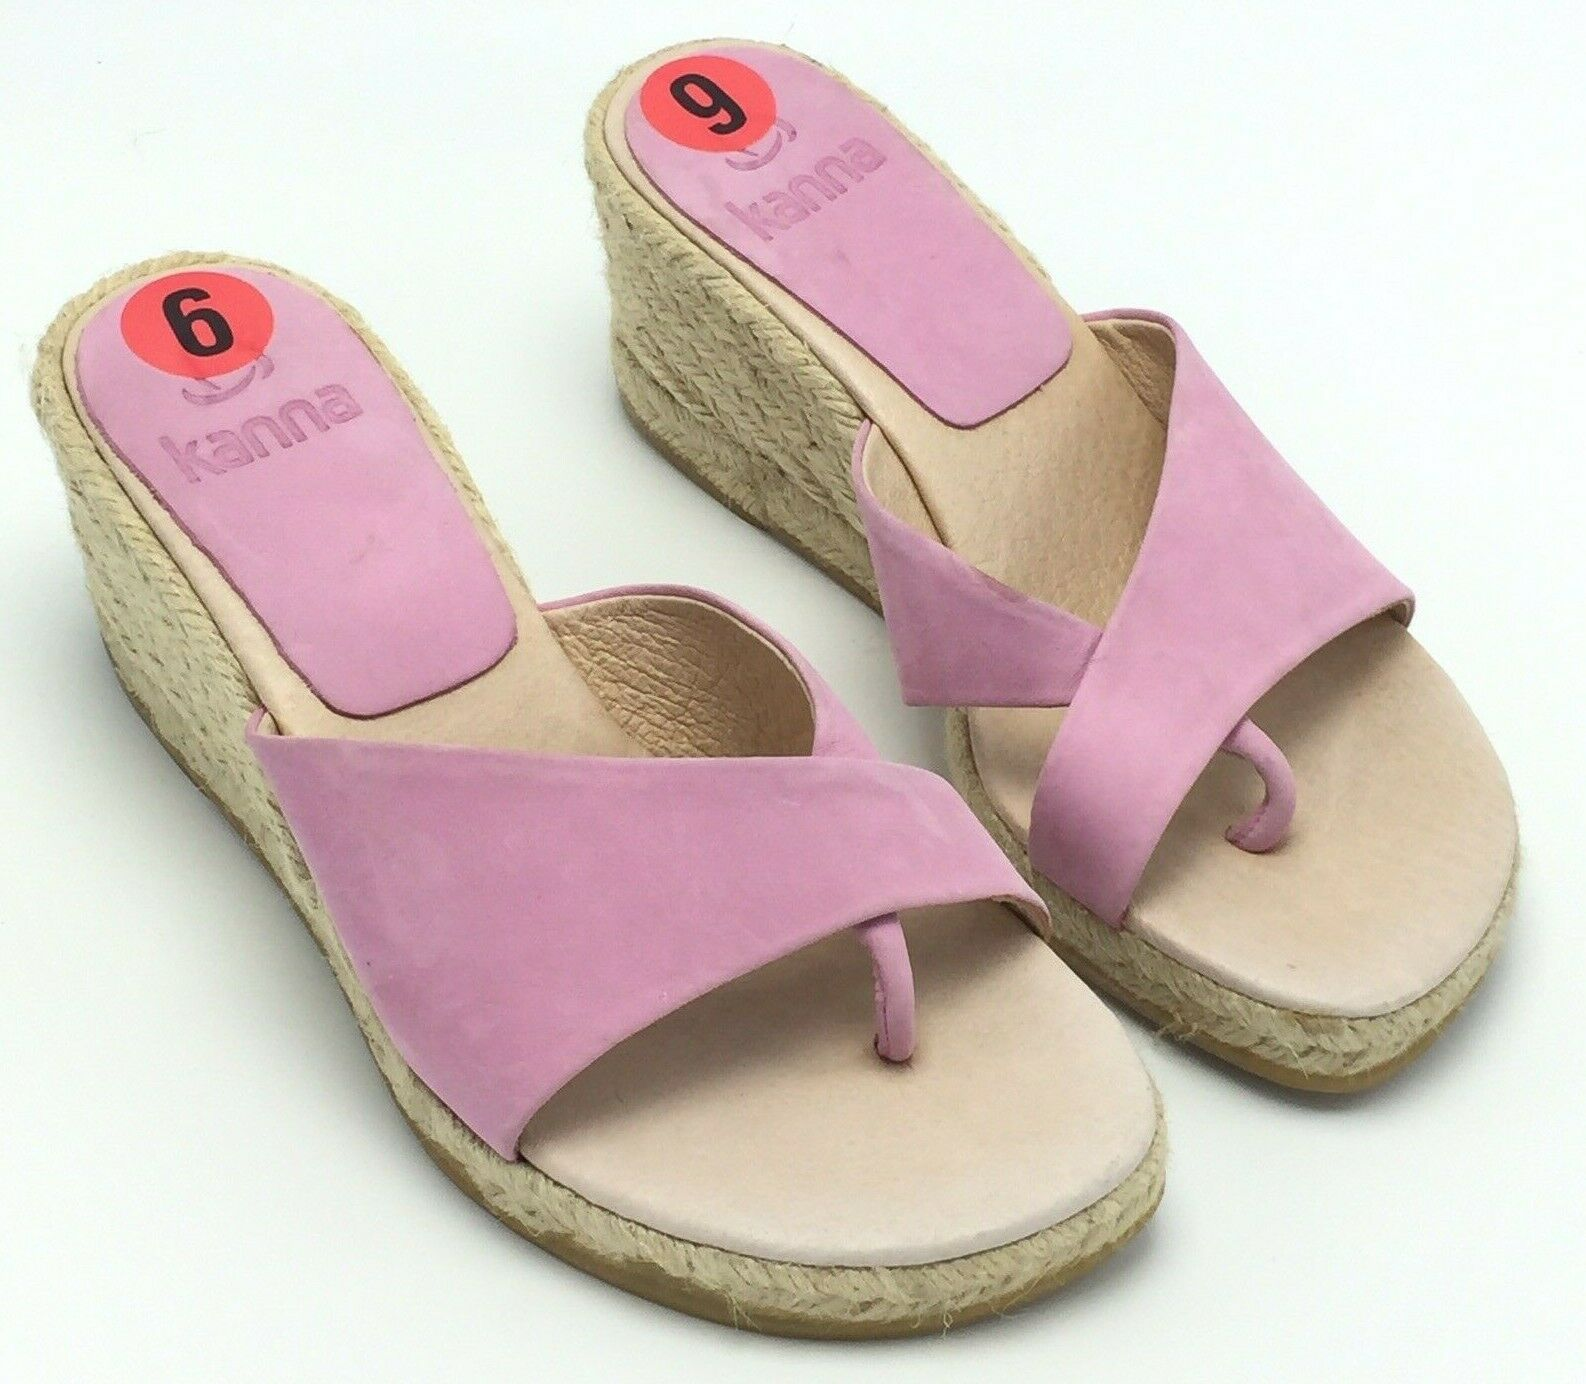 New Kanna Size 6 Womens Espadrille Wedge Pink Leather Slip On Between Toe 2.5